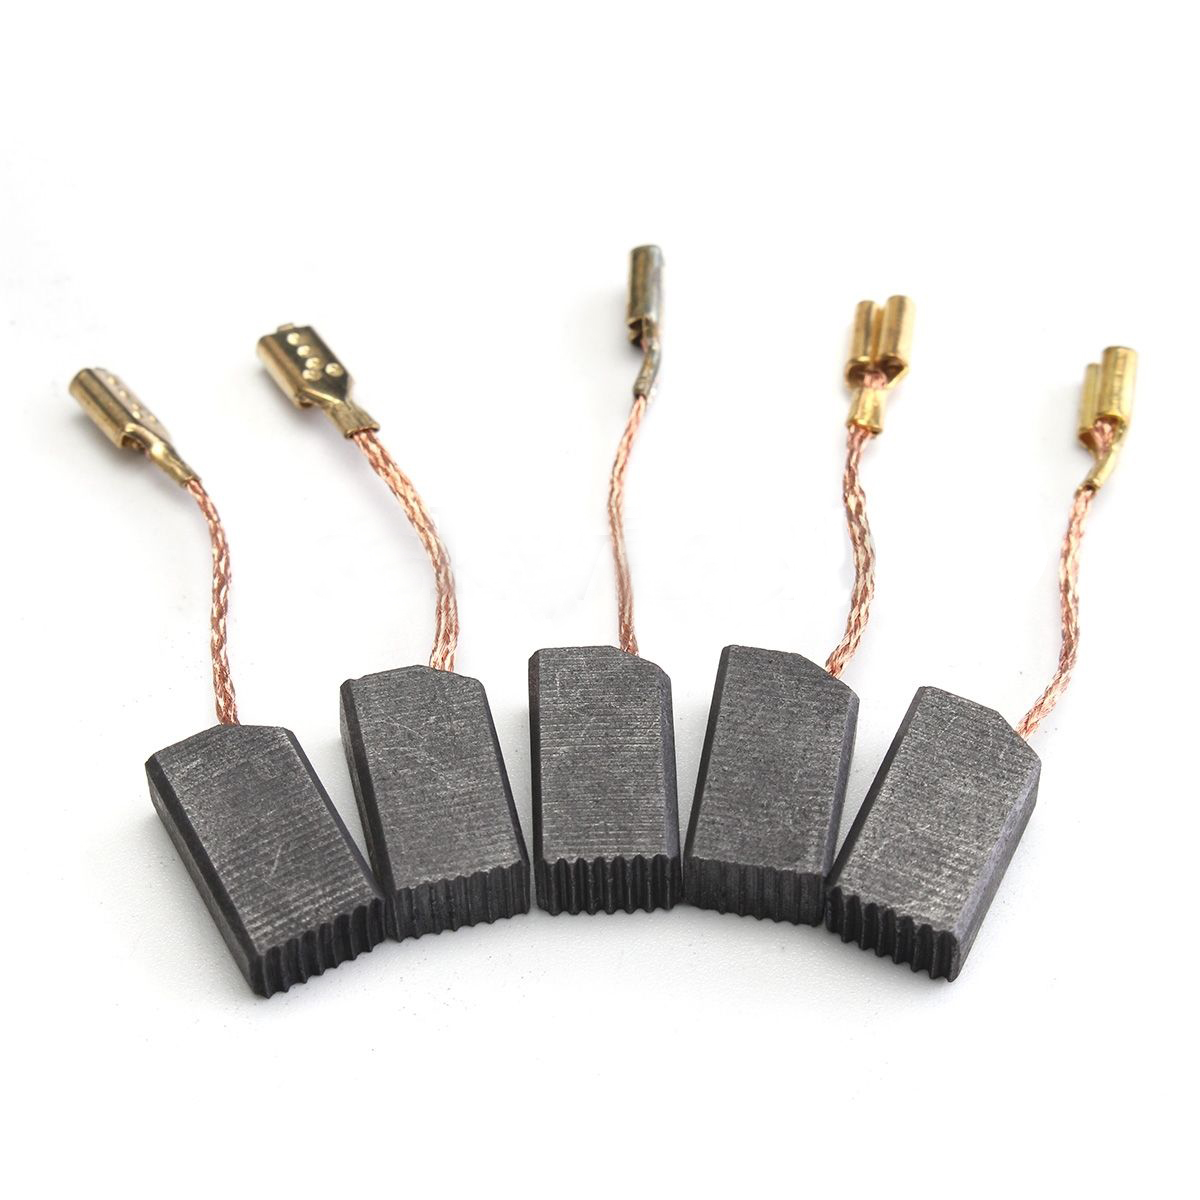 20pcs Conductive Motor Carbon Brushes Set For Angle Grinder Electric Drill Mayitr Tight Copper Wire Carbon Brush 6mm*8mm*14mm dmiotech 10 pcs electric drill motor carbon brushes 10mm 12mm 17mm 4mm 5mm 6 5mm 6mm 7 5mm 8mm 9mm